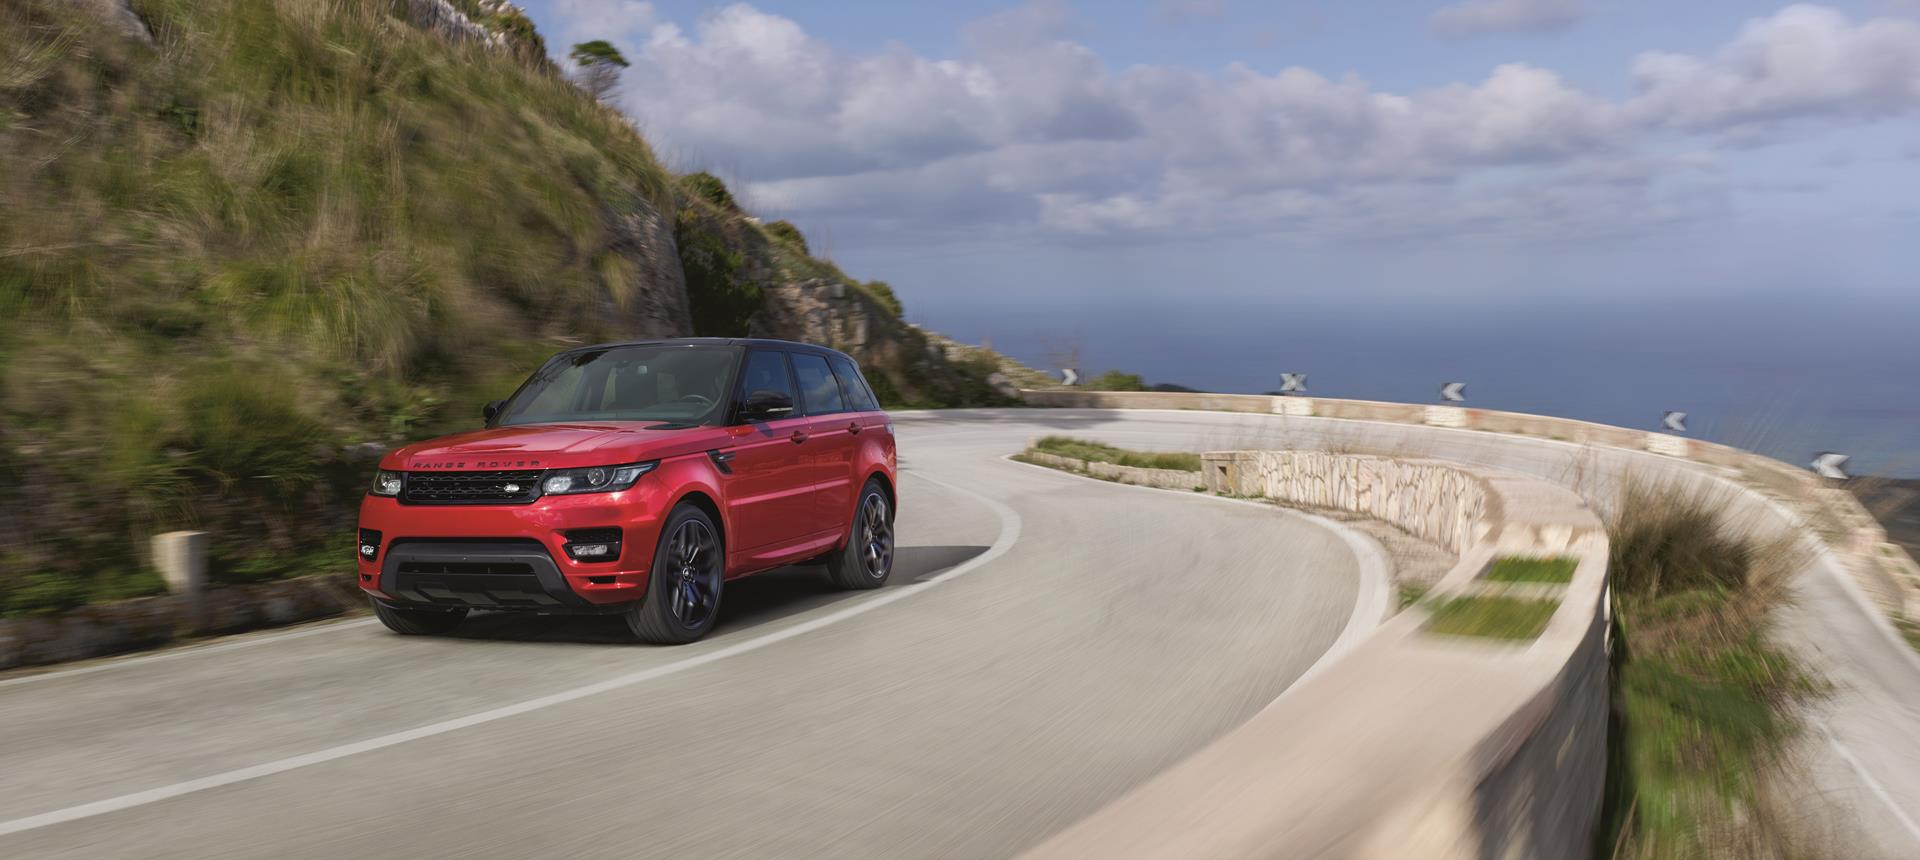 Land Rover Range Rover Sport HST Limited Edition pictures and wallpaper